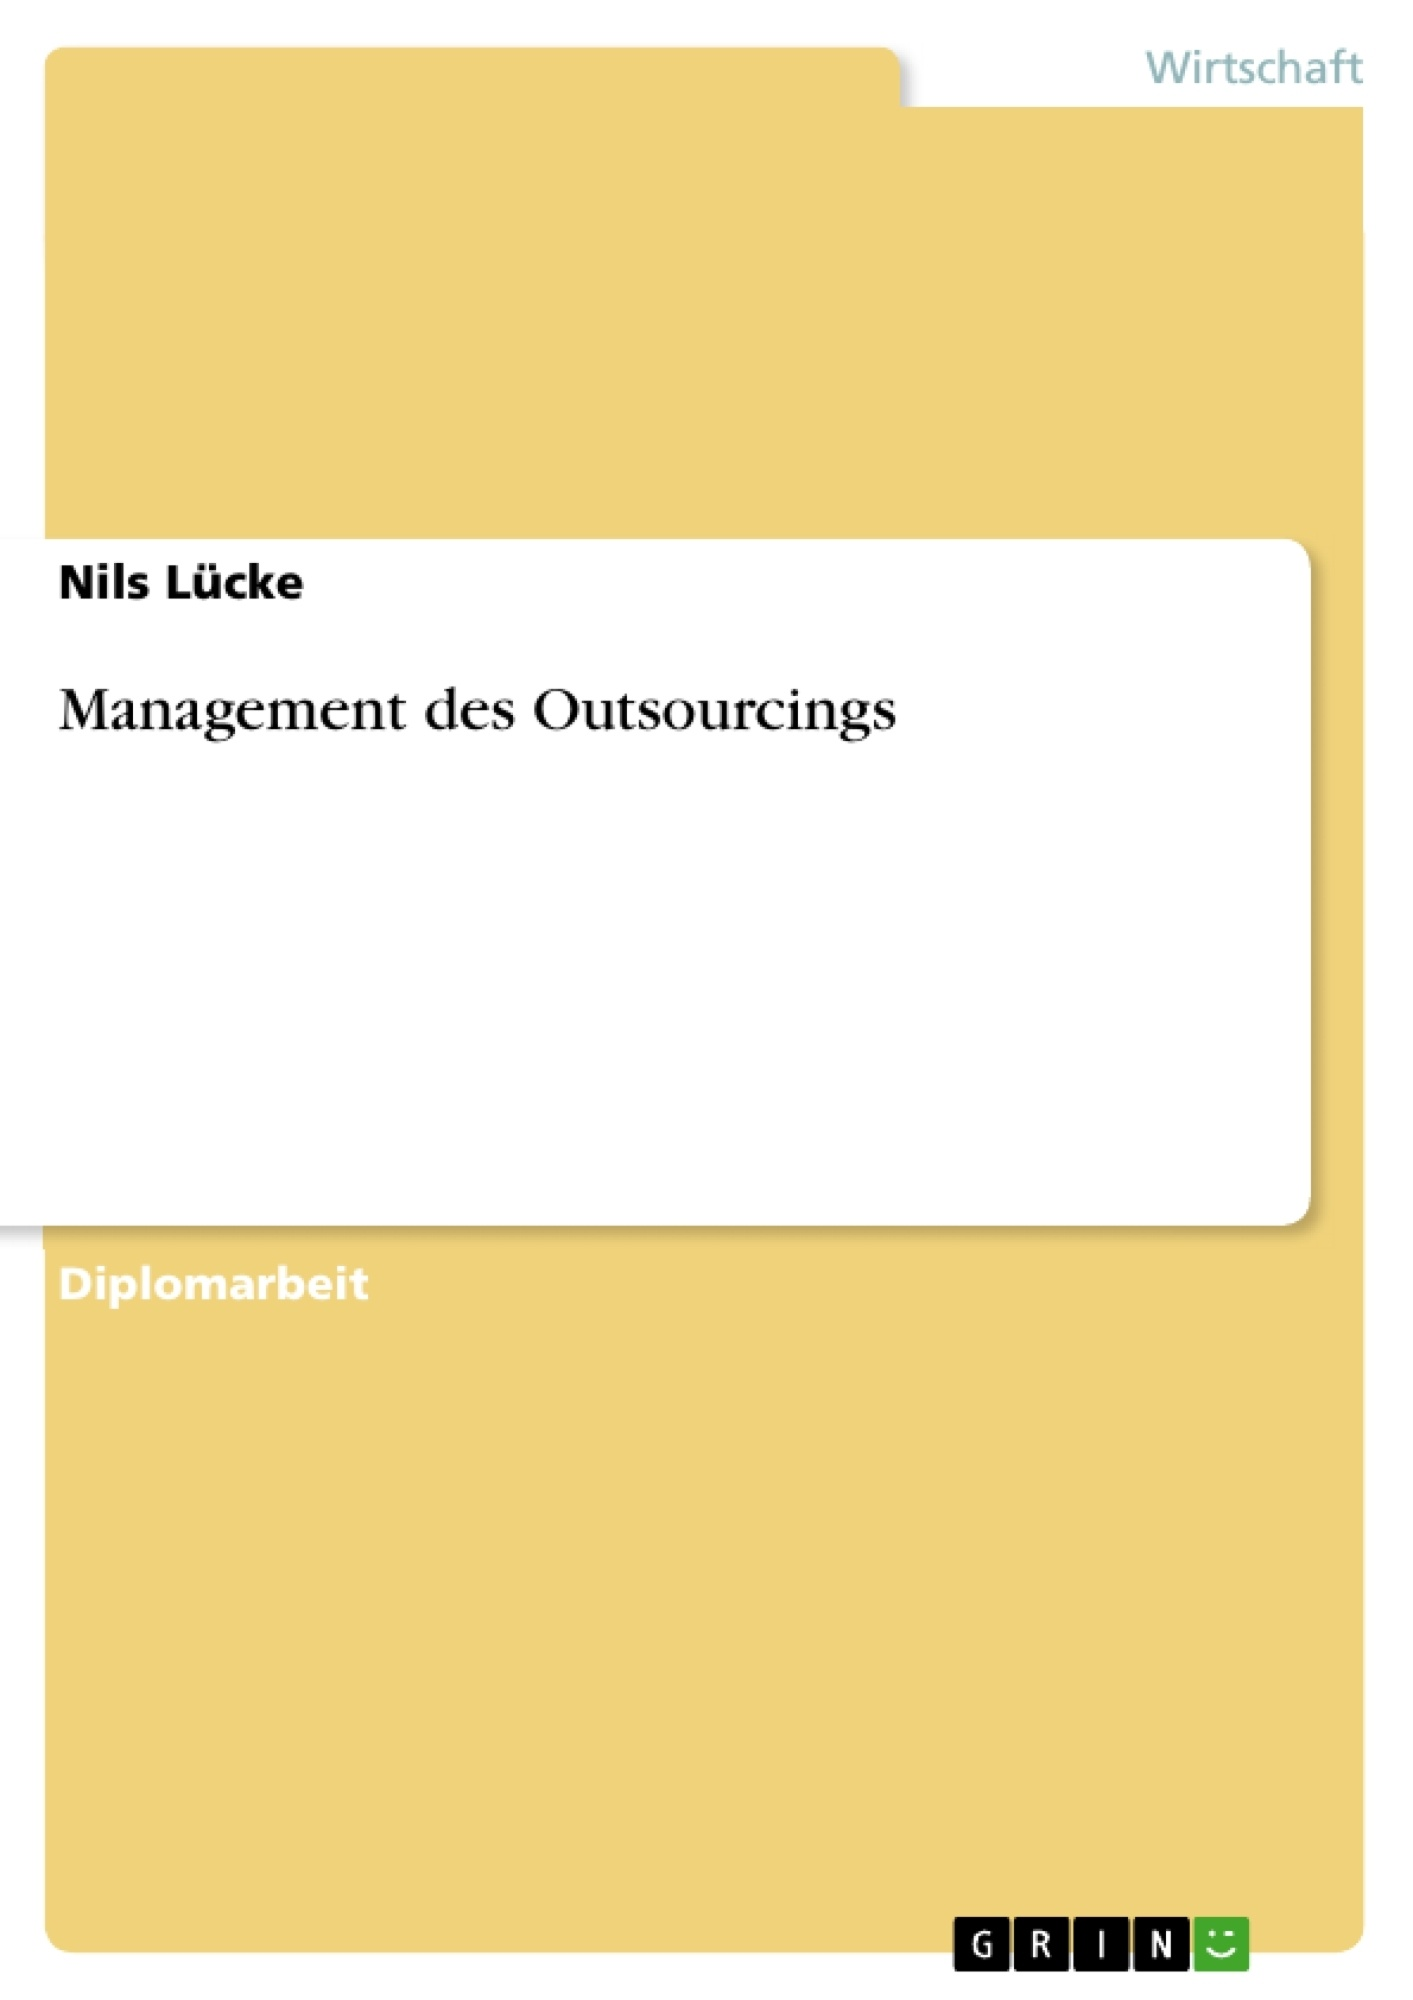 Titel: Management des Outsourcings